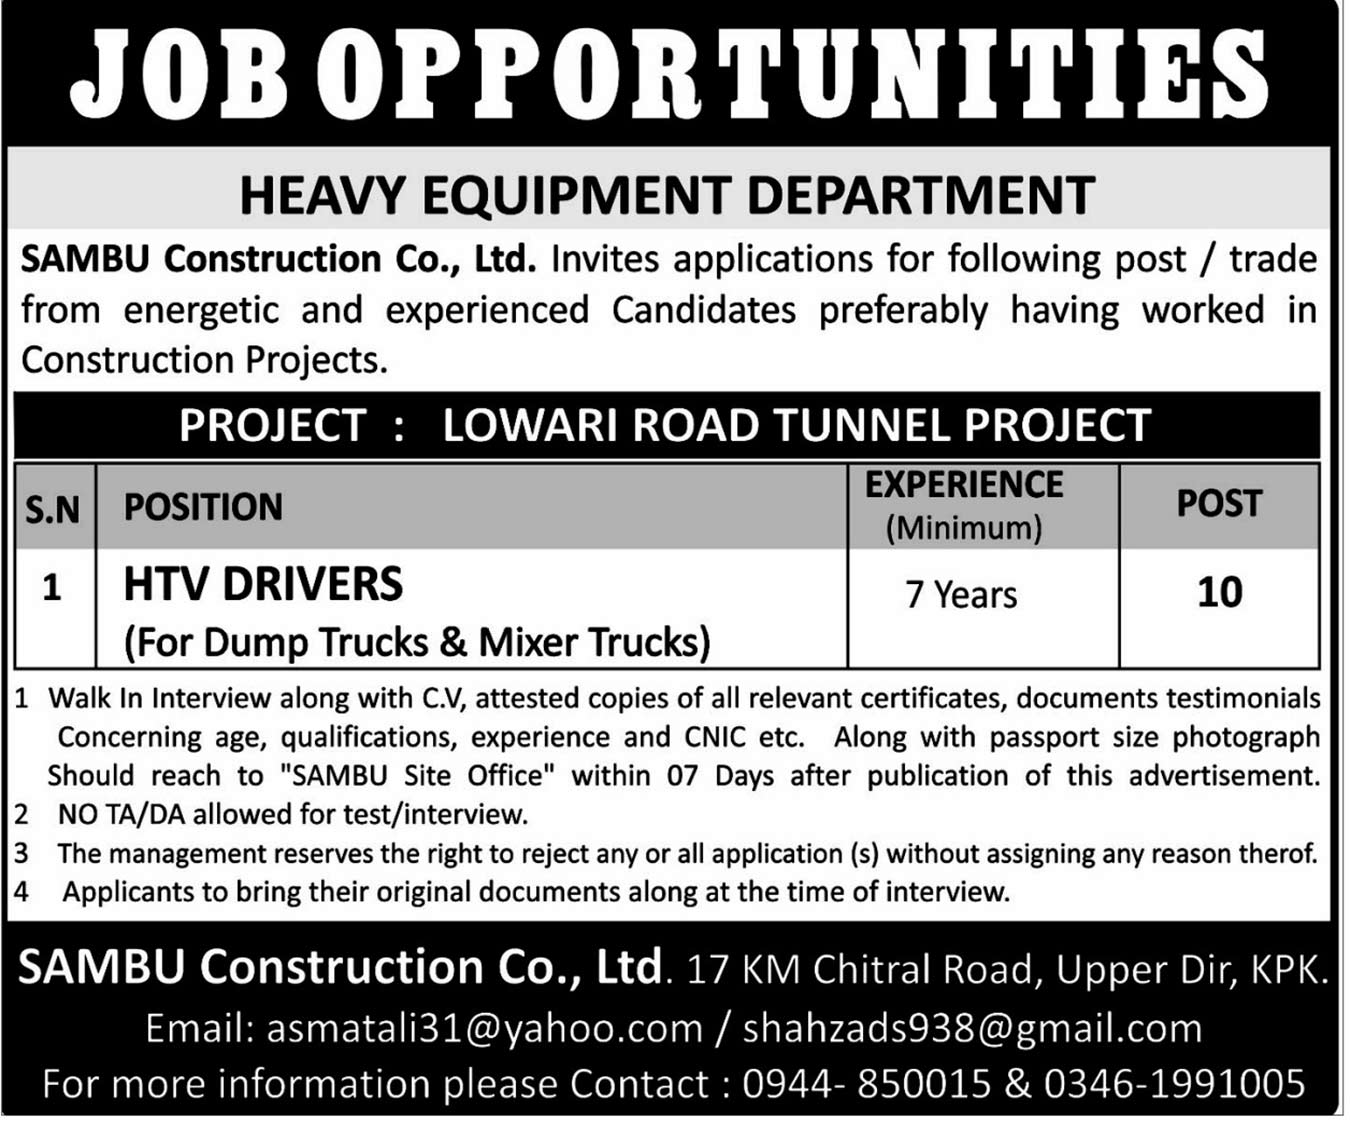 Heavy Equipment Department Drivers Jobs in KPK